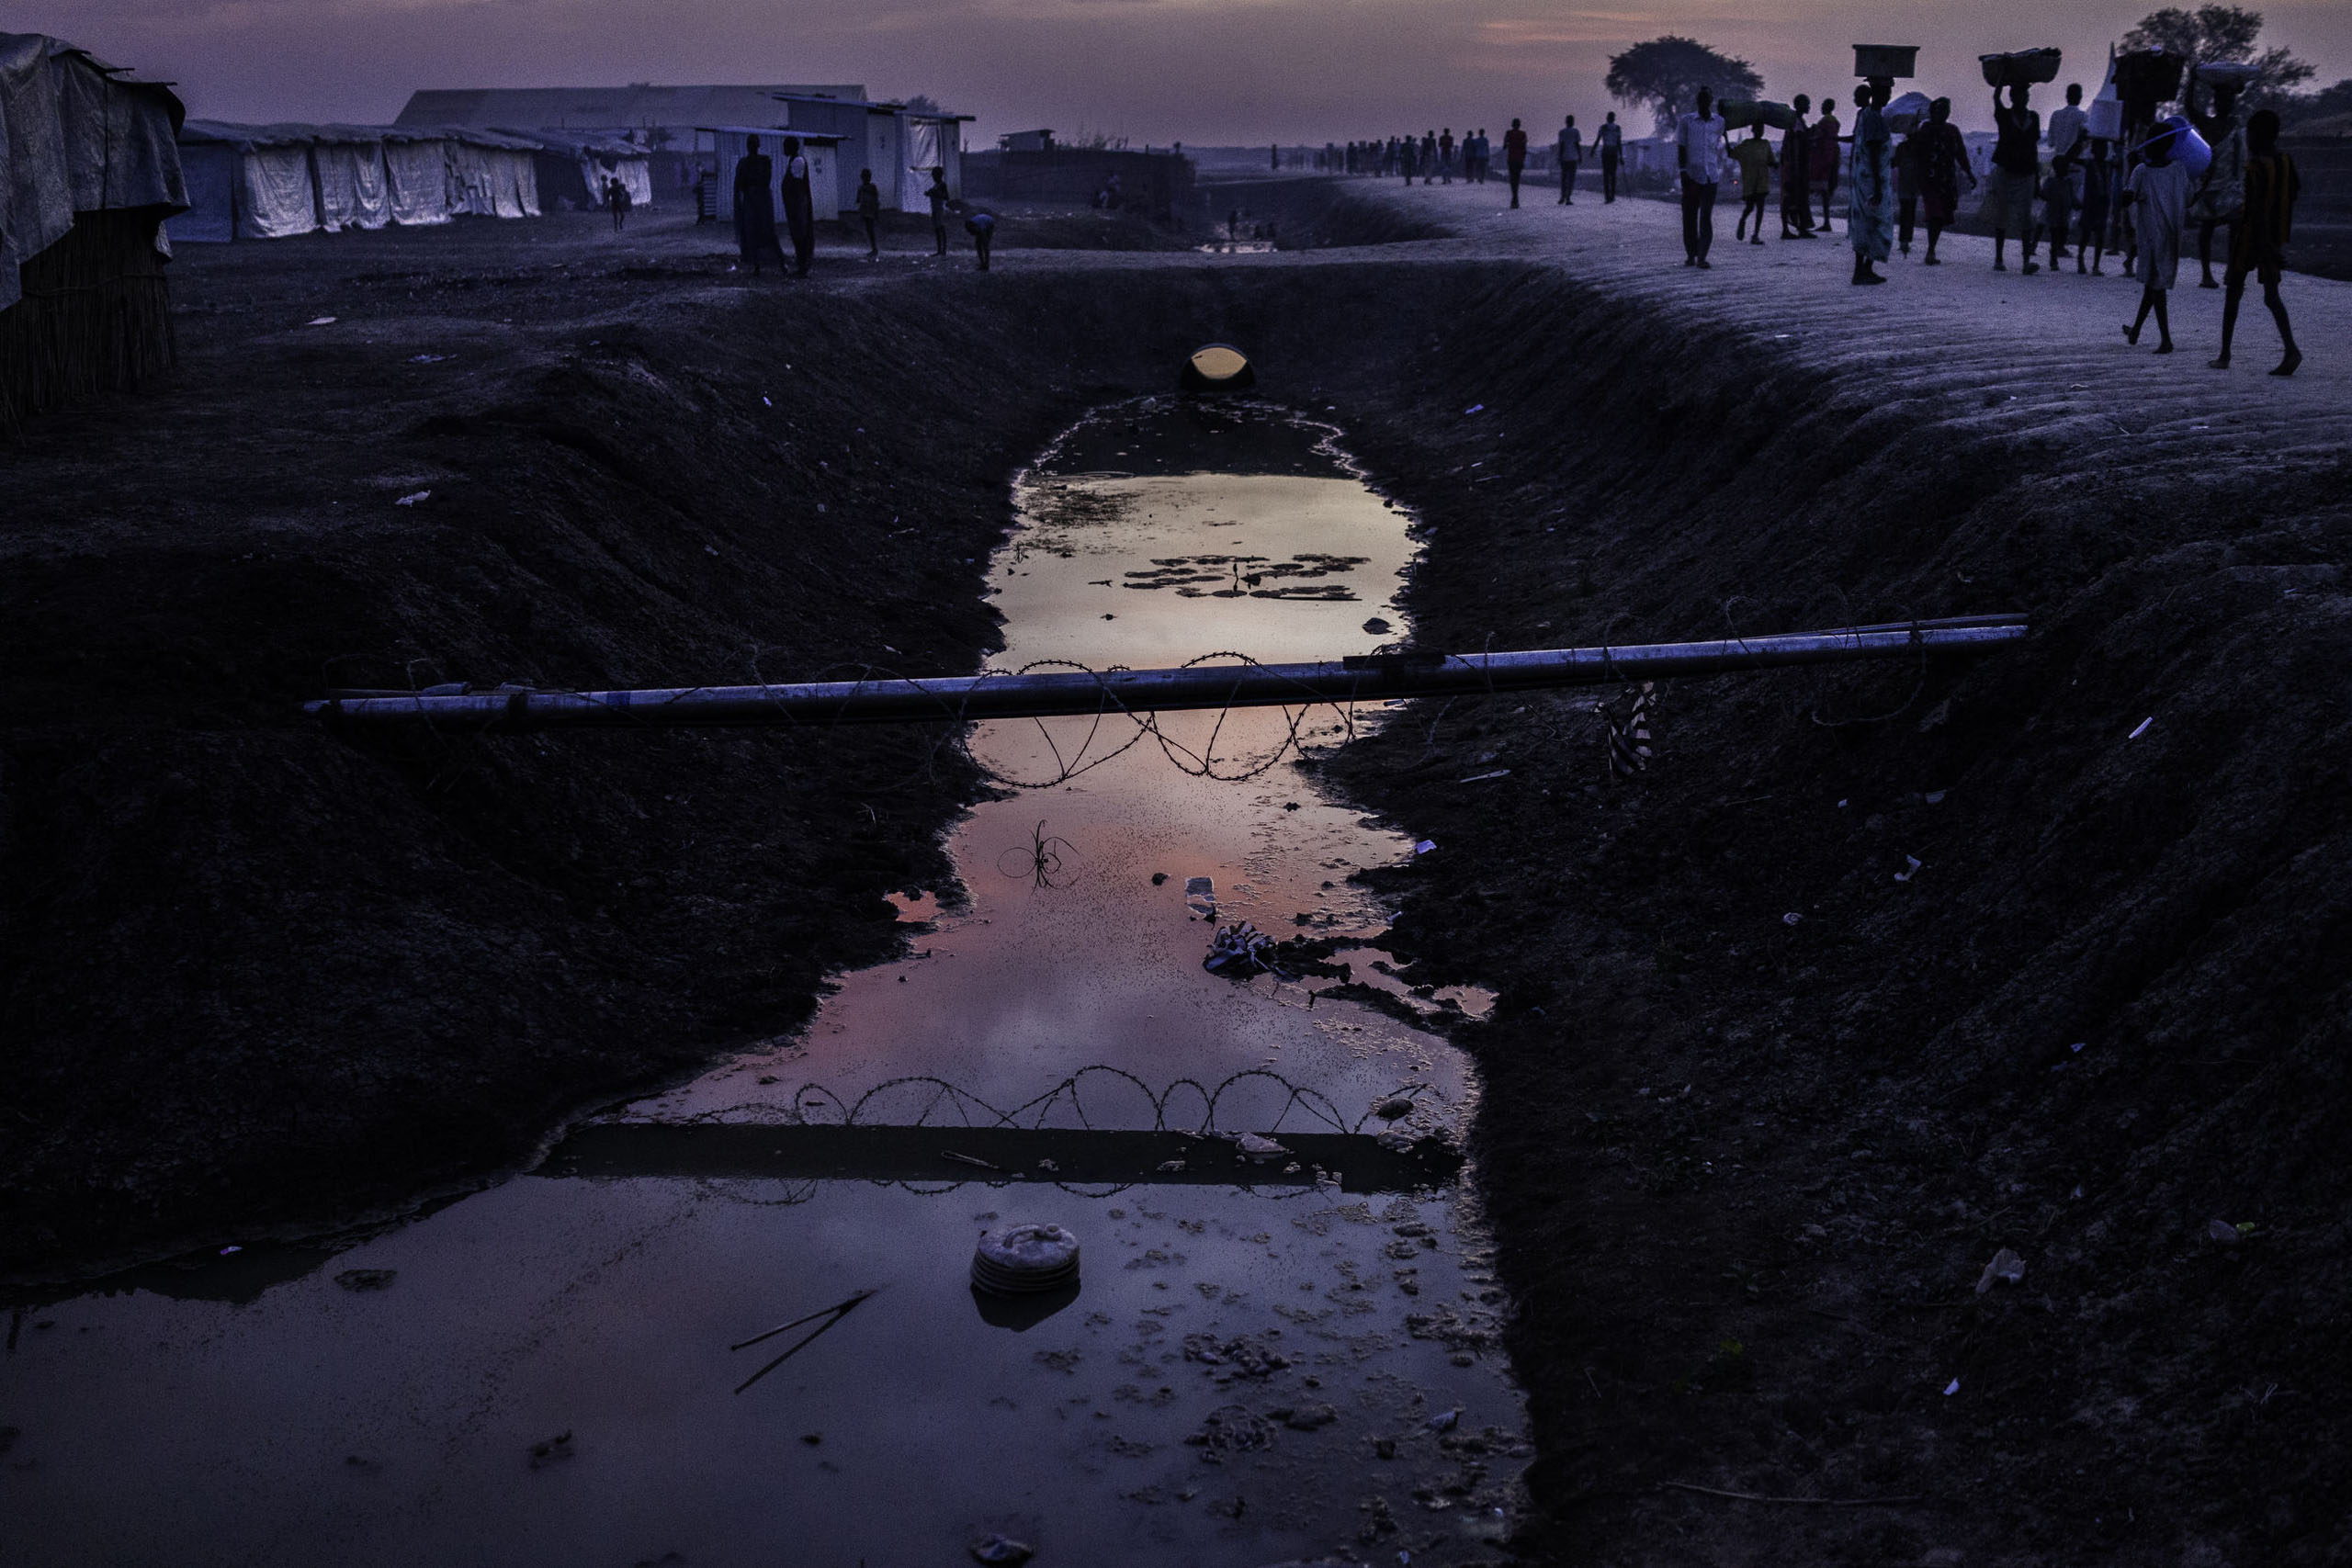 People walk past a drainage ditch in the United Nations camp in Bentiu, Unity State, South Sudan.